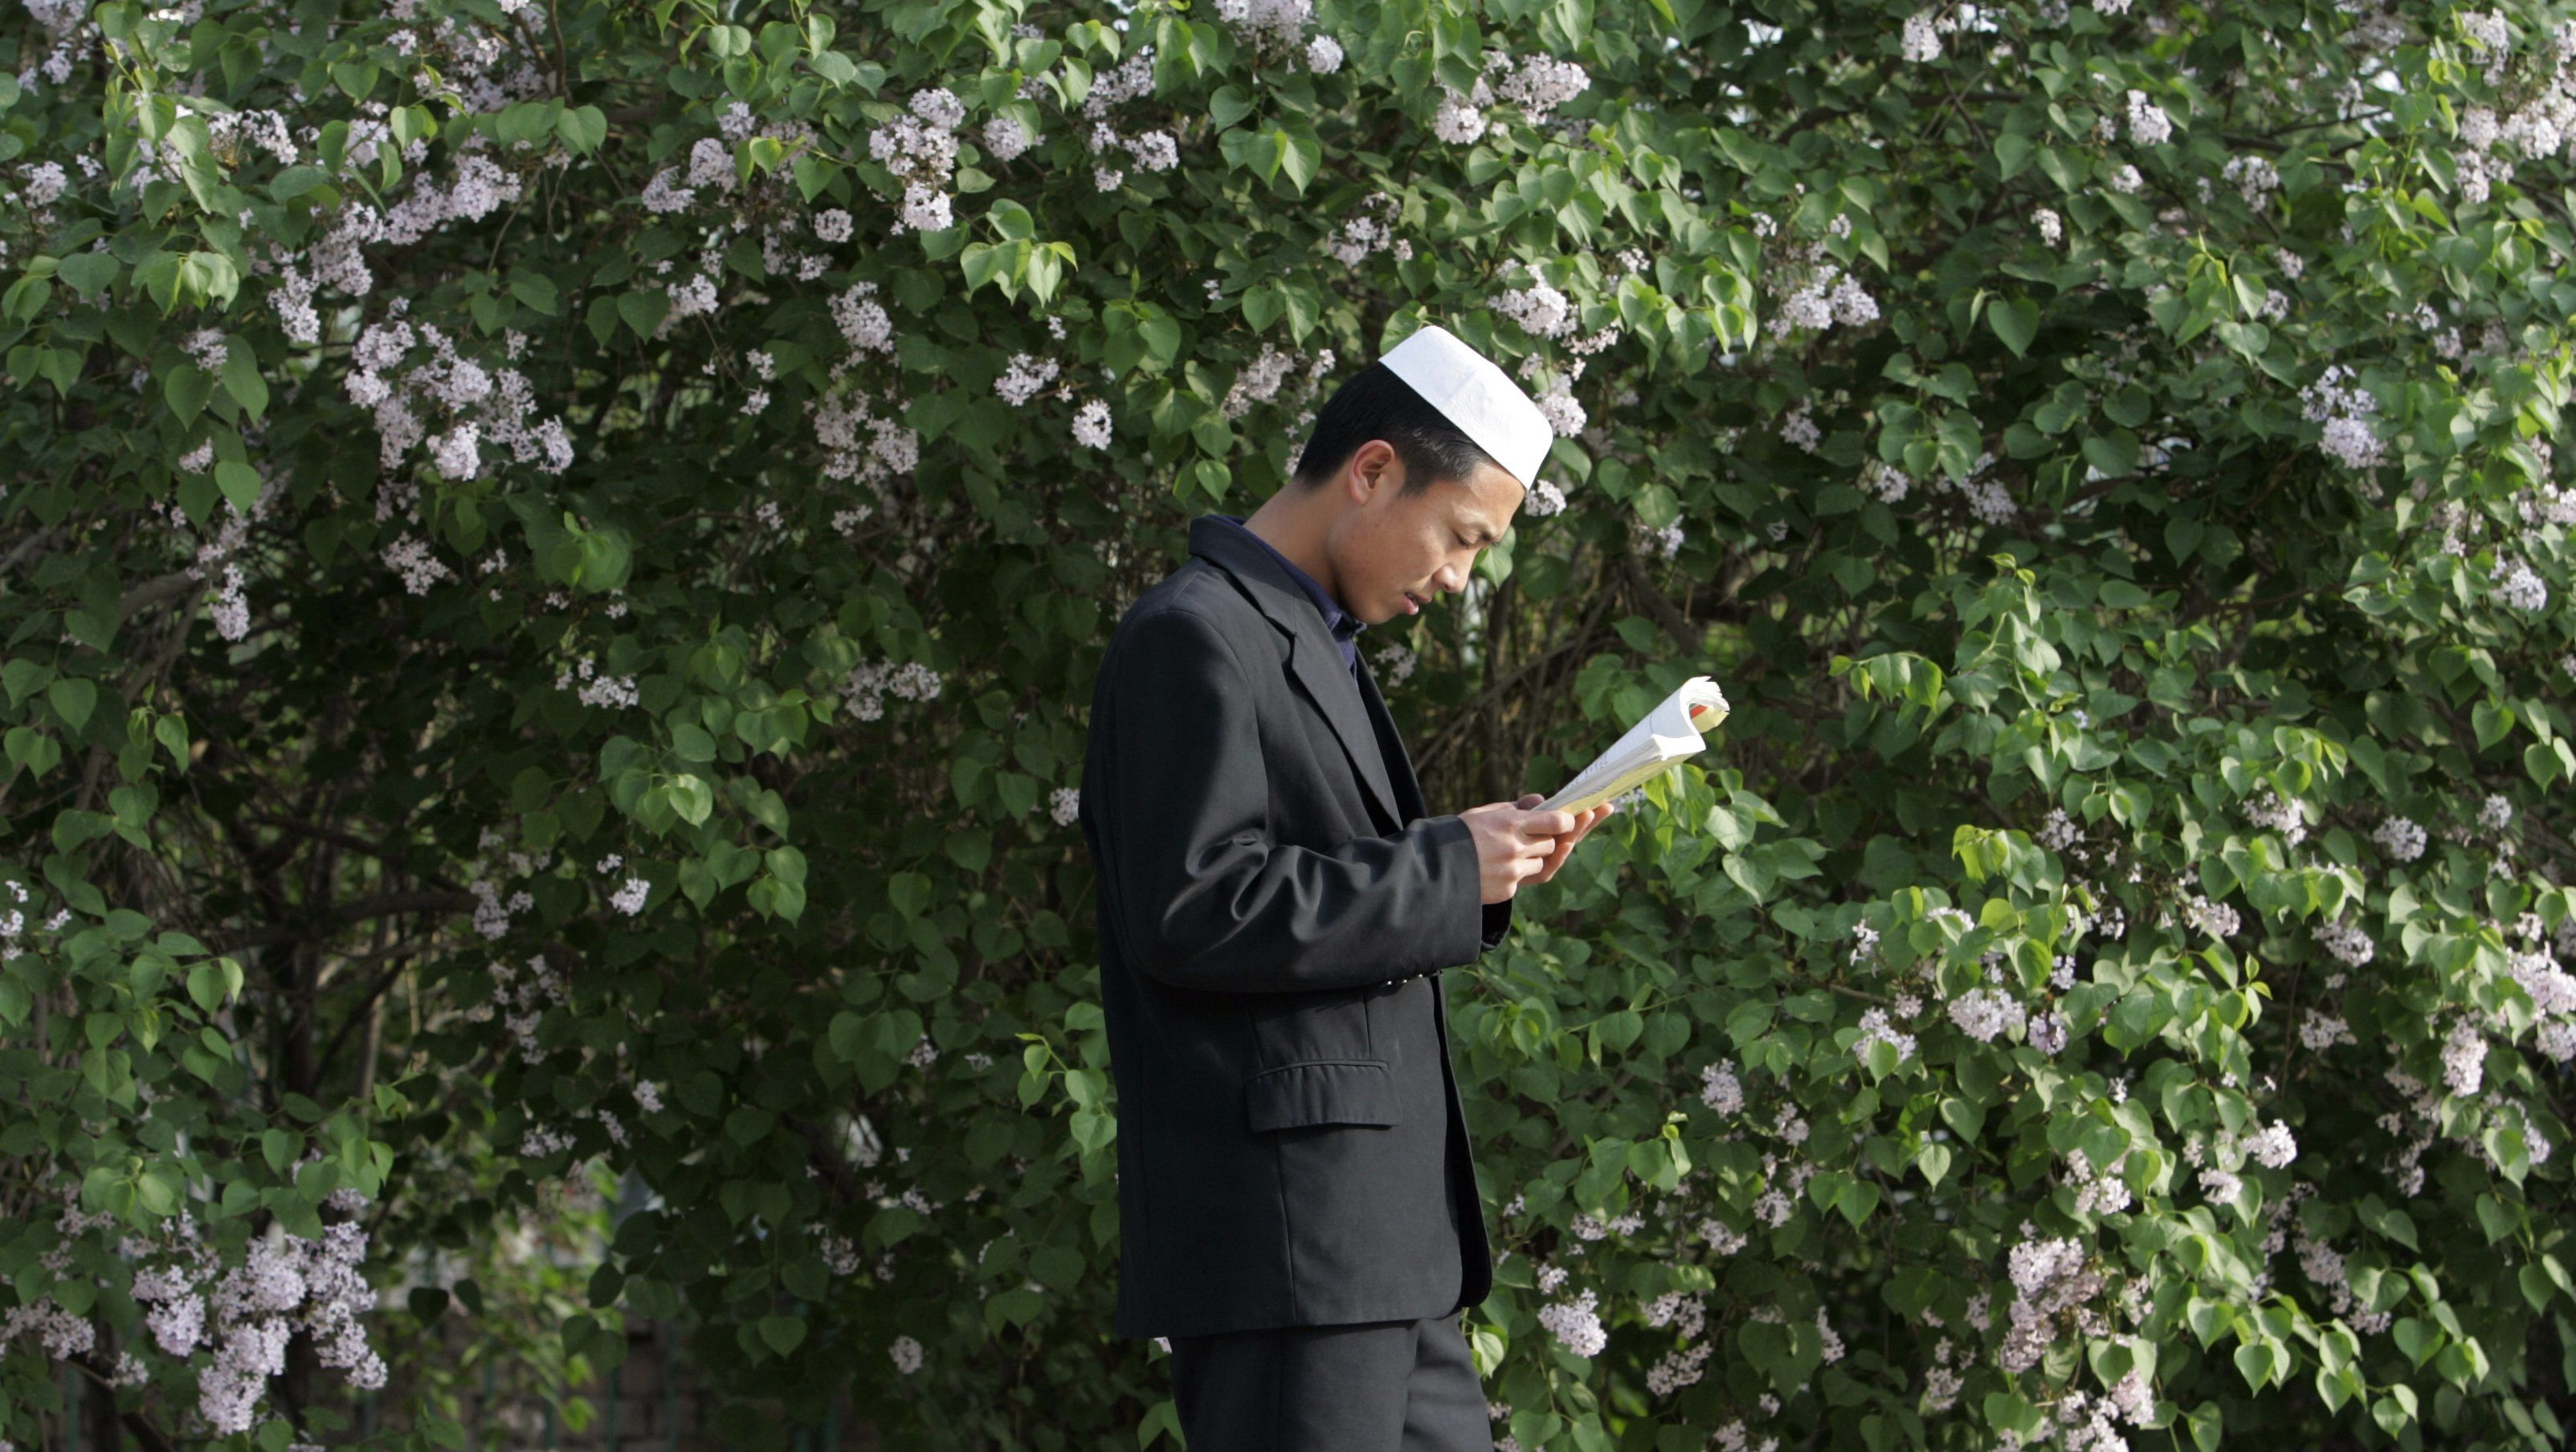 A Muslim tyro from a Chinese Hui minority studies during Ningxia Islamic College in Yinchuan, collateral of northwest China's Ningxia Hui Autonomous Region, Apr 23,2007. According to propagandize and internal sources, some-more than 300 students, including 82 girls, learn culture, Arabic language, Islam and story during a college, that was founded in 1989.